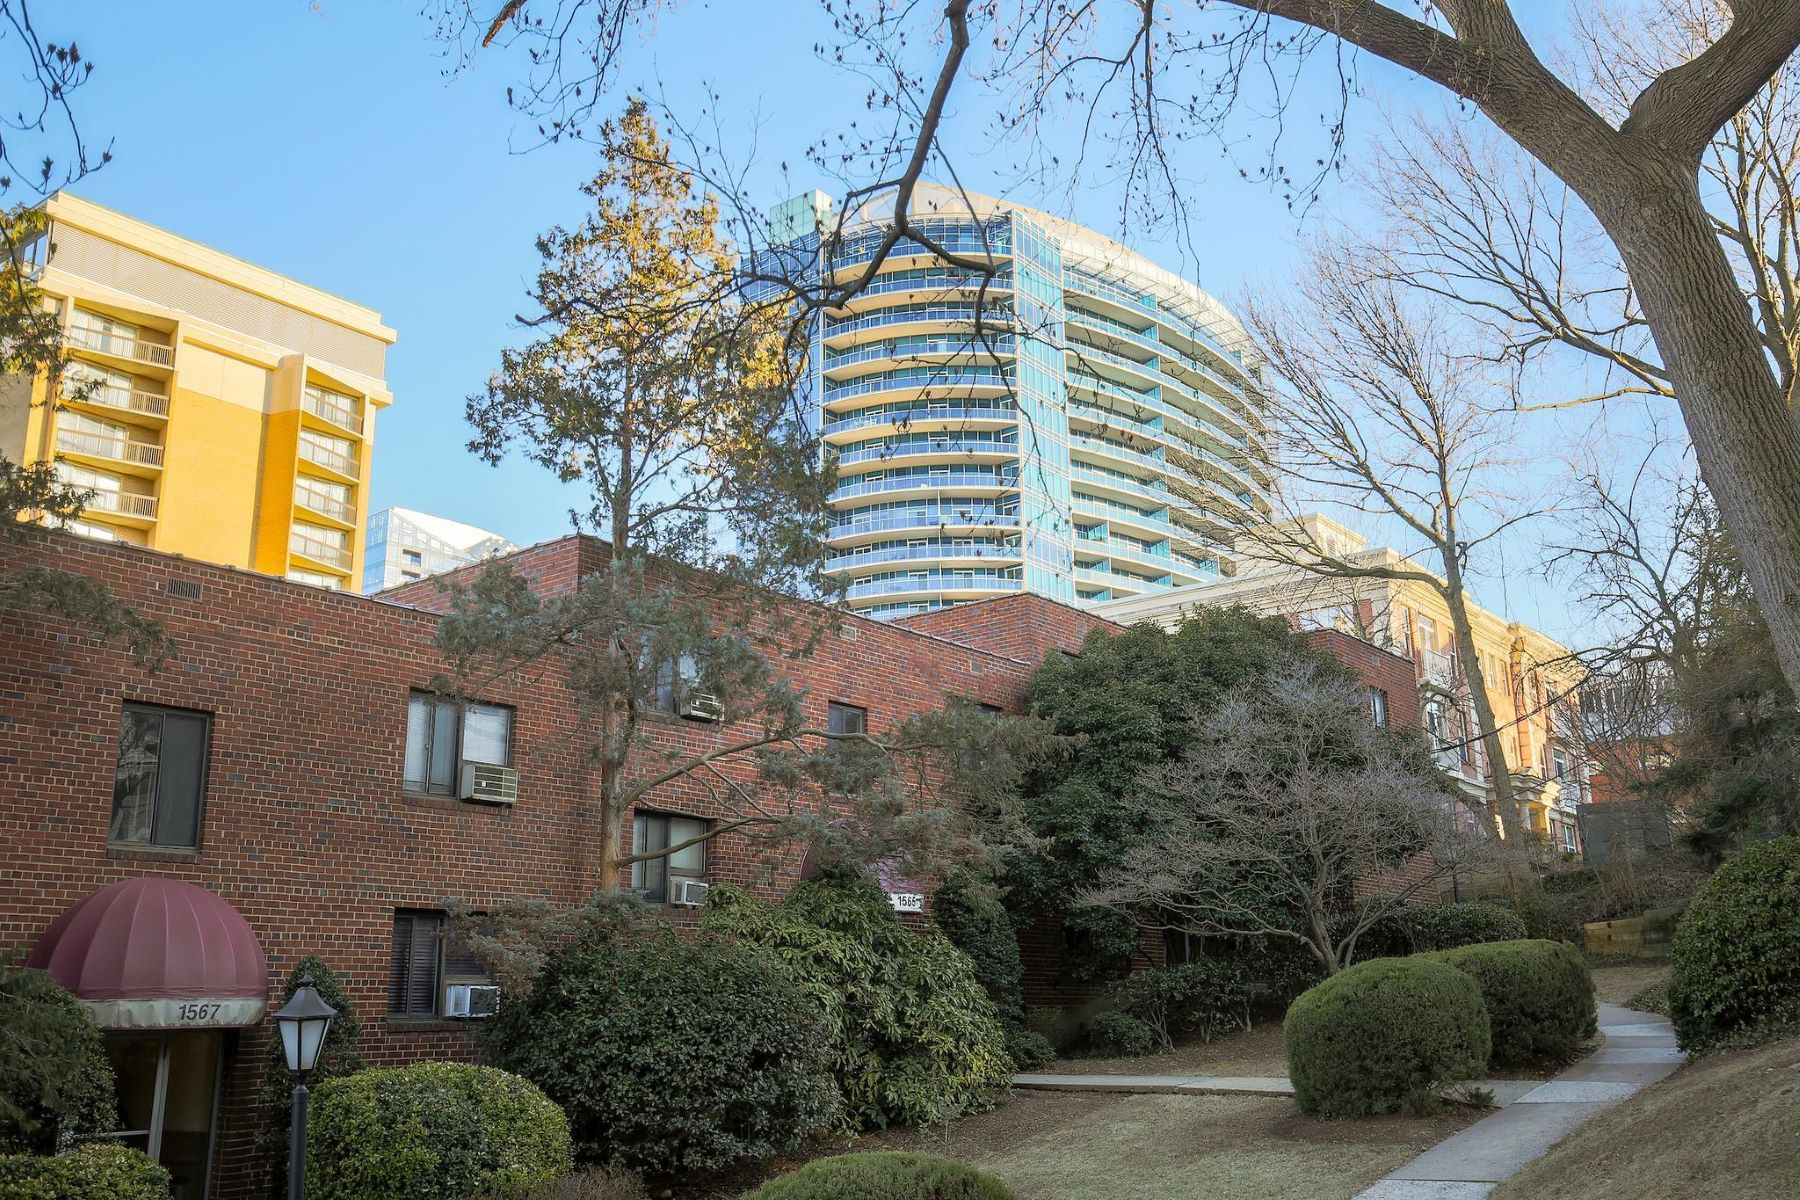 Condominium for Rent at 1569 Colonial Ter #207-Z 1569 Colonial Ter #207-Z Arlington, Virginia 22209 United States